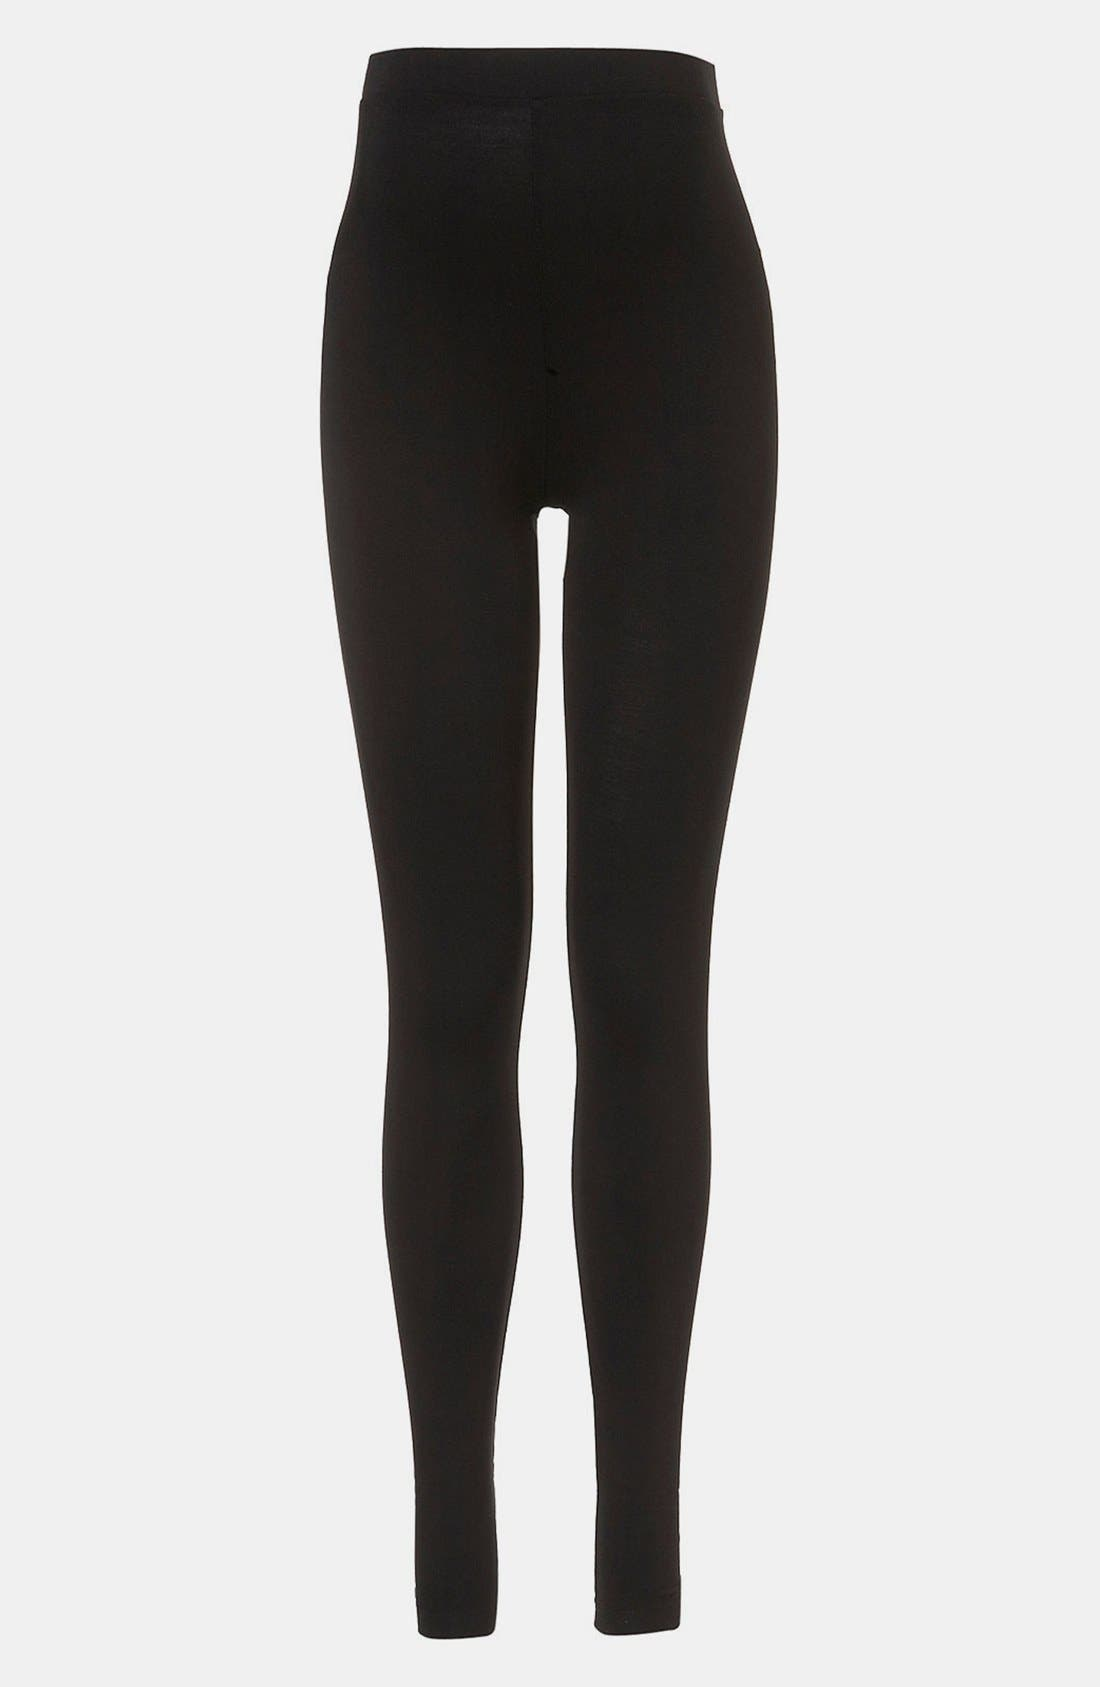 Main Image - Topshop Maternity High Waist Ankle Leggings